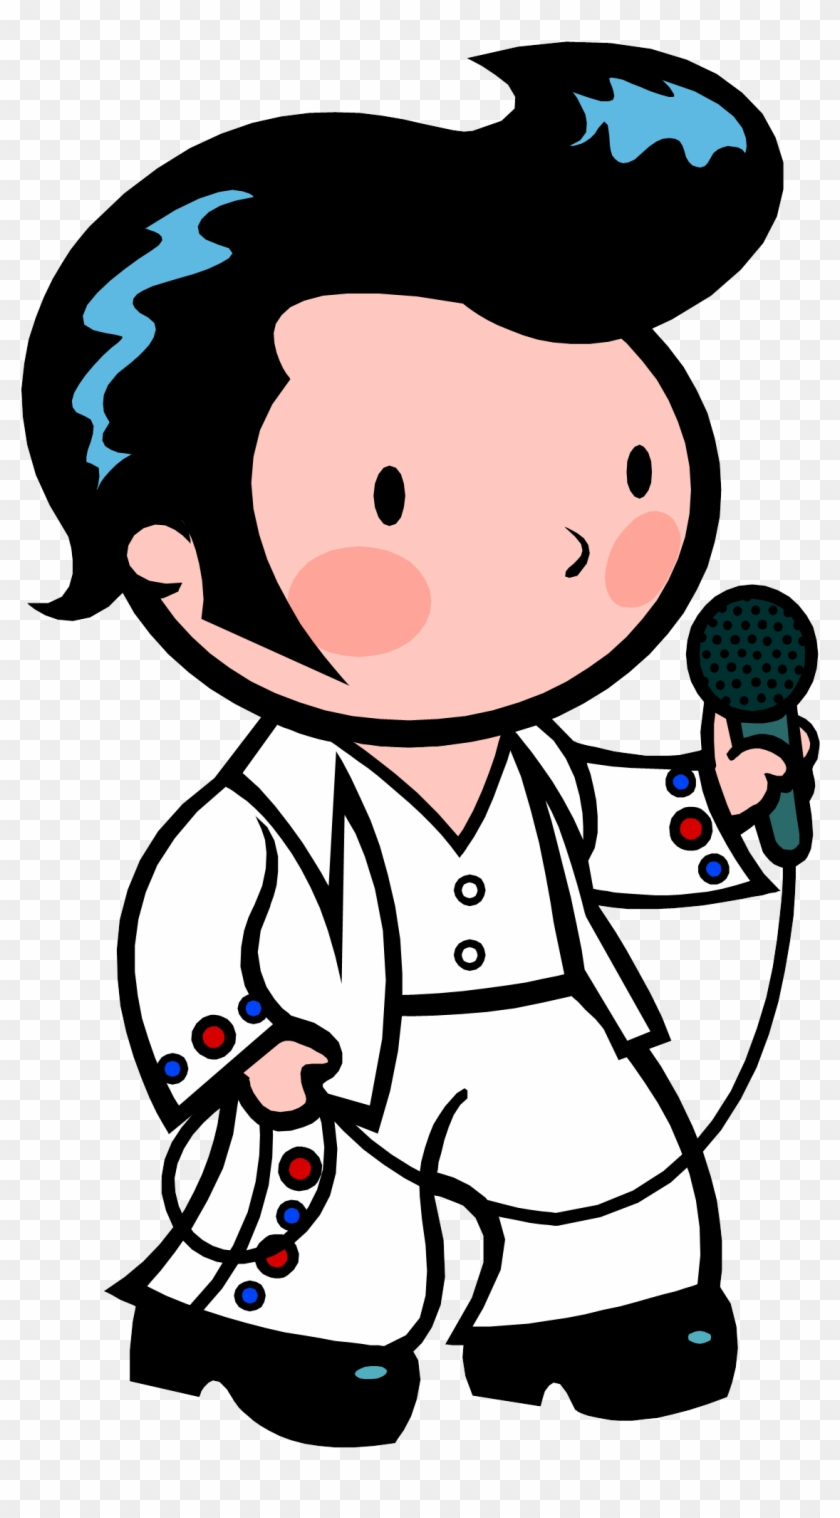 clip arts related to cartoon elvis presley clip art free rh clipartmax com elvis clip art images elvis clip art black and white